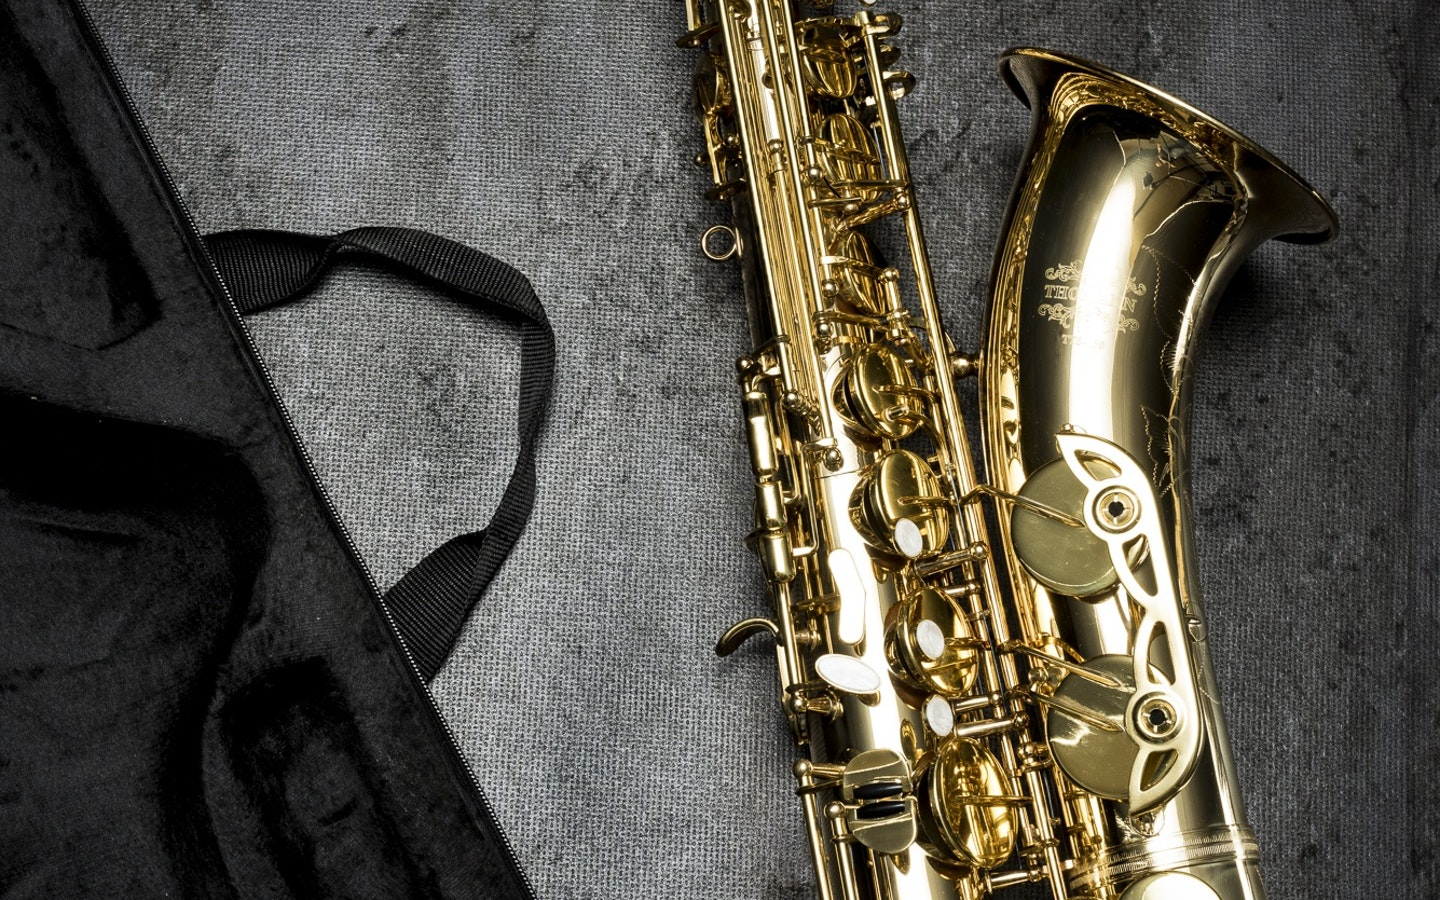 This jazz show is undoubtedly one of the must-visit among the events and exhibitions in April